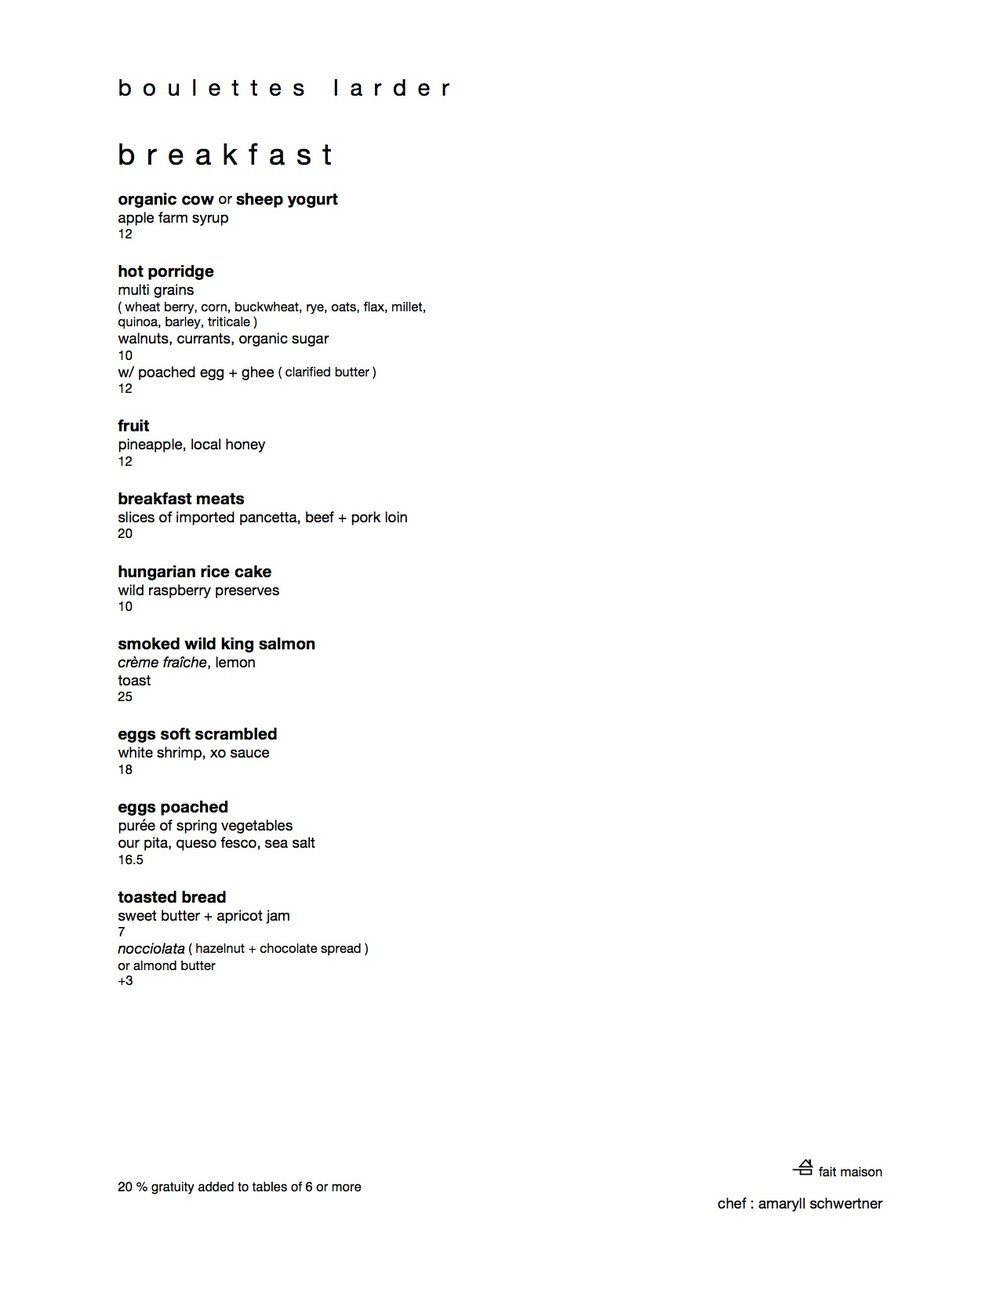 SAMPLE BREAKFAST MENU